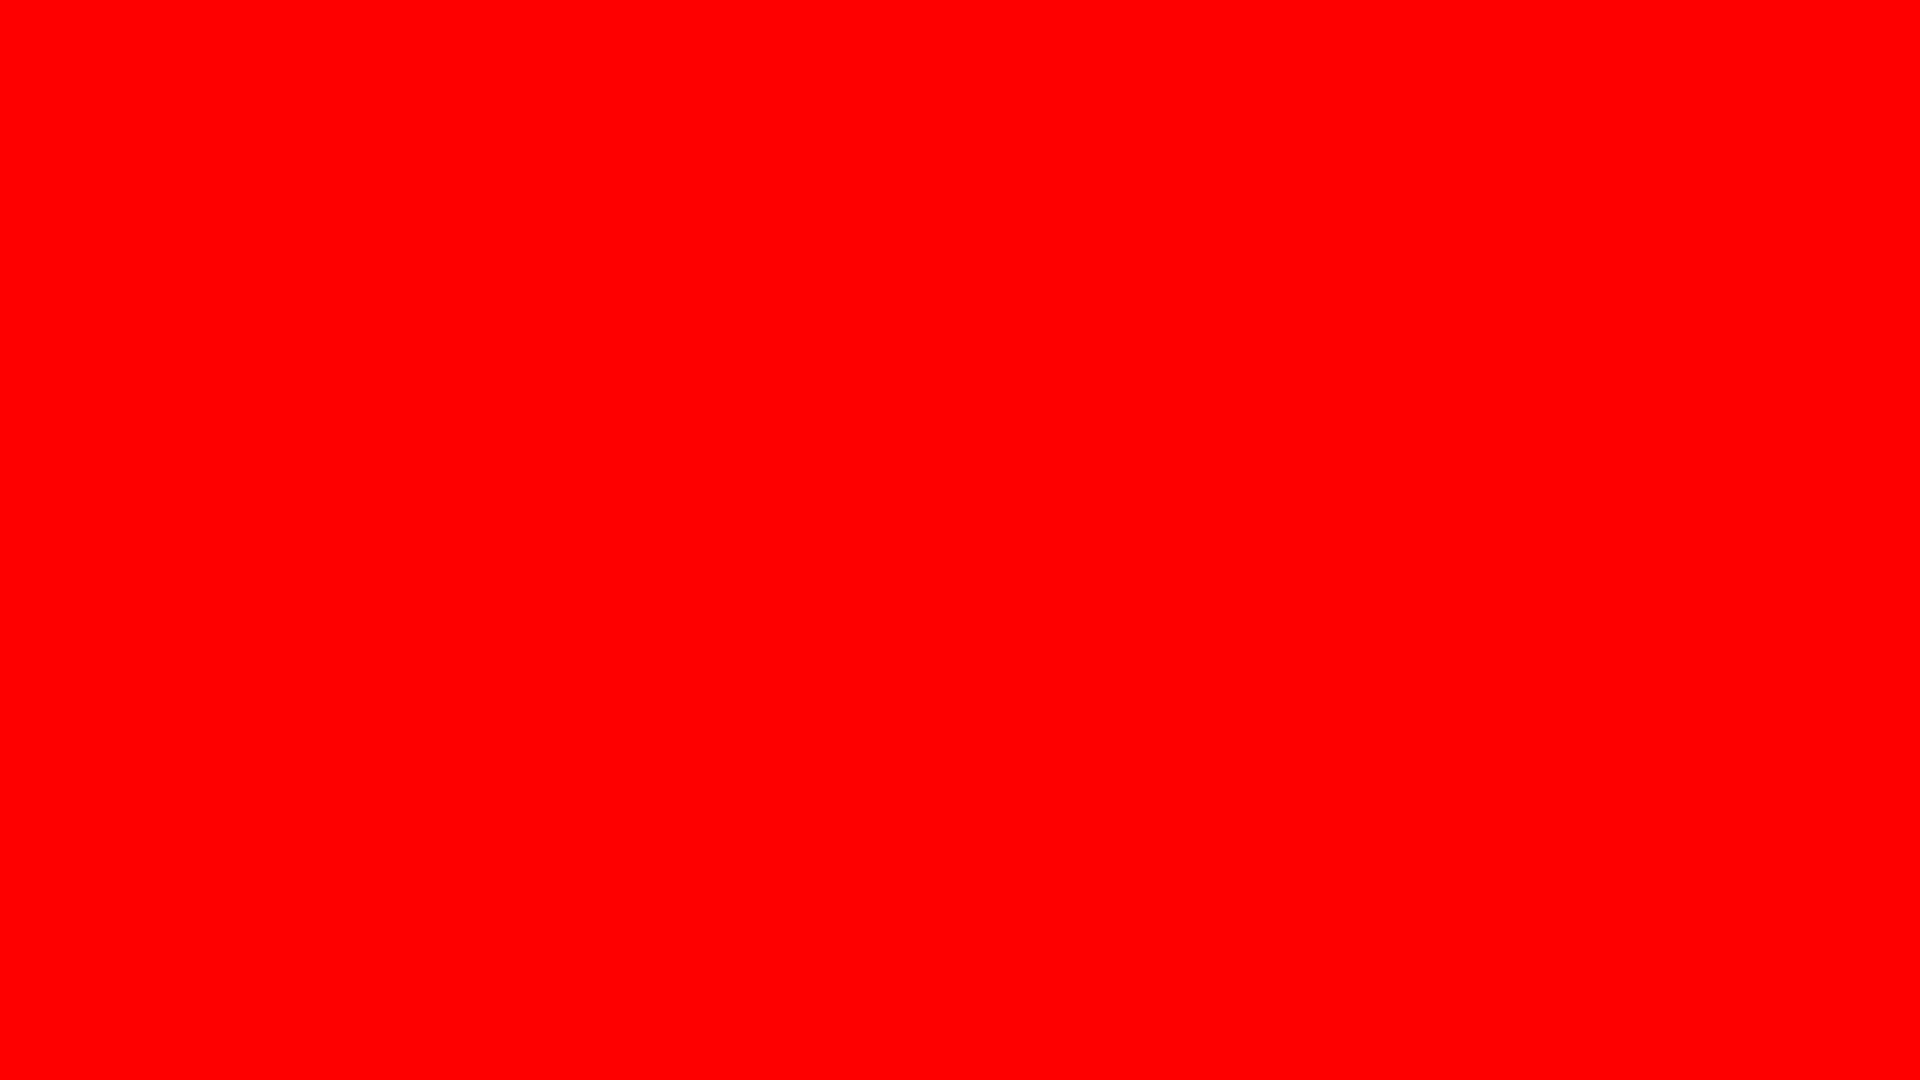 1920x1080-red-solid-color-background.jpg